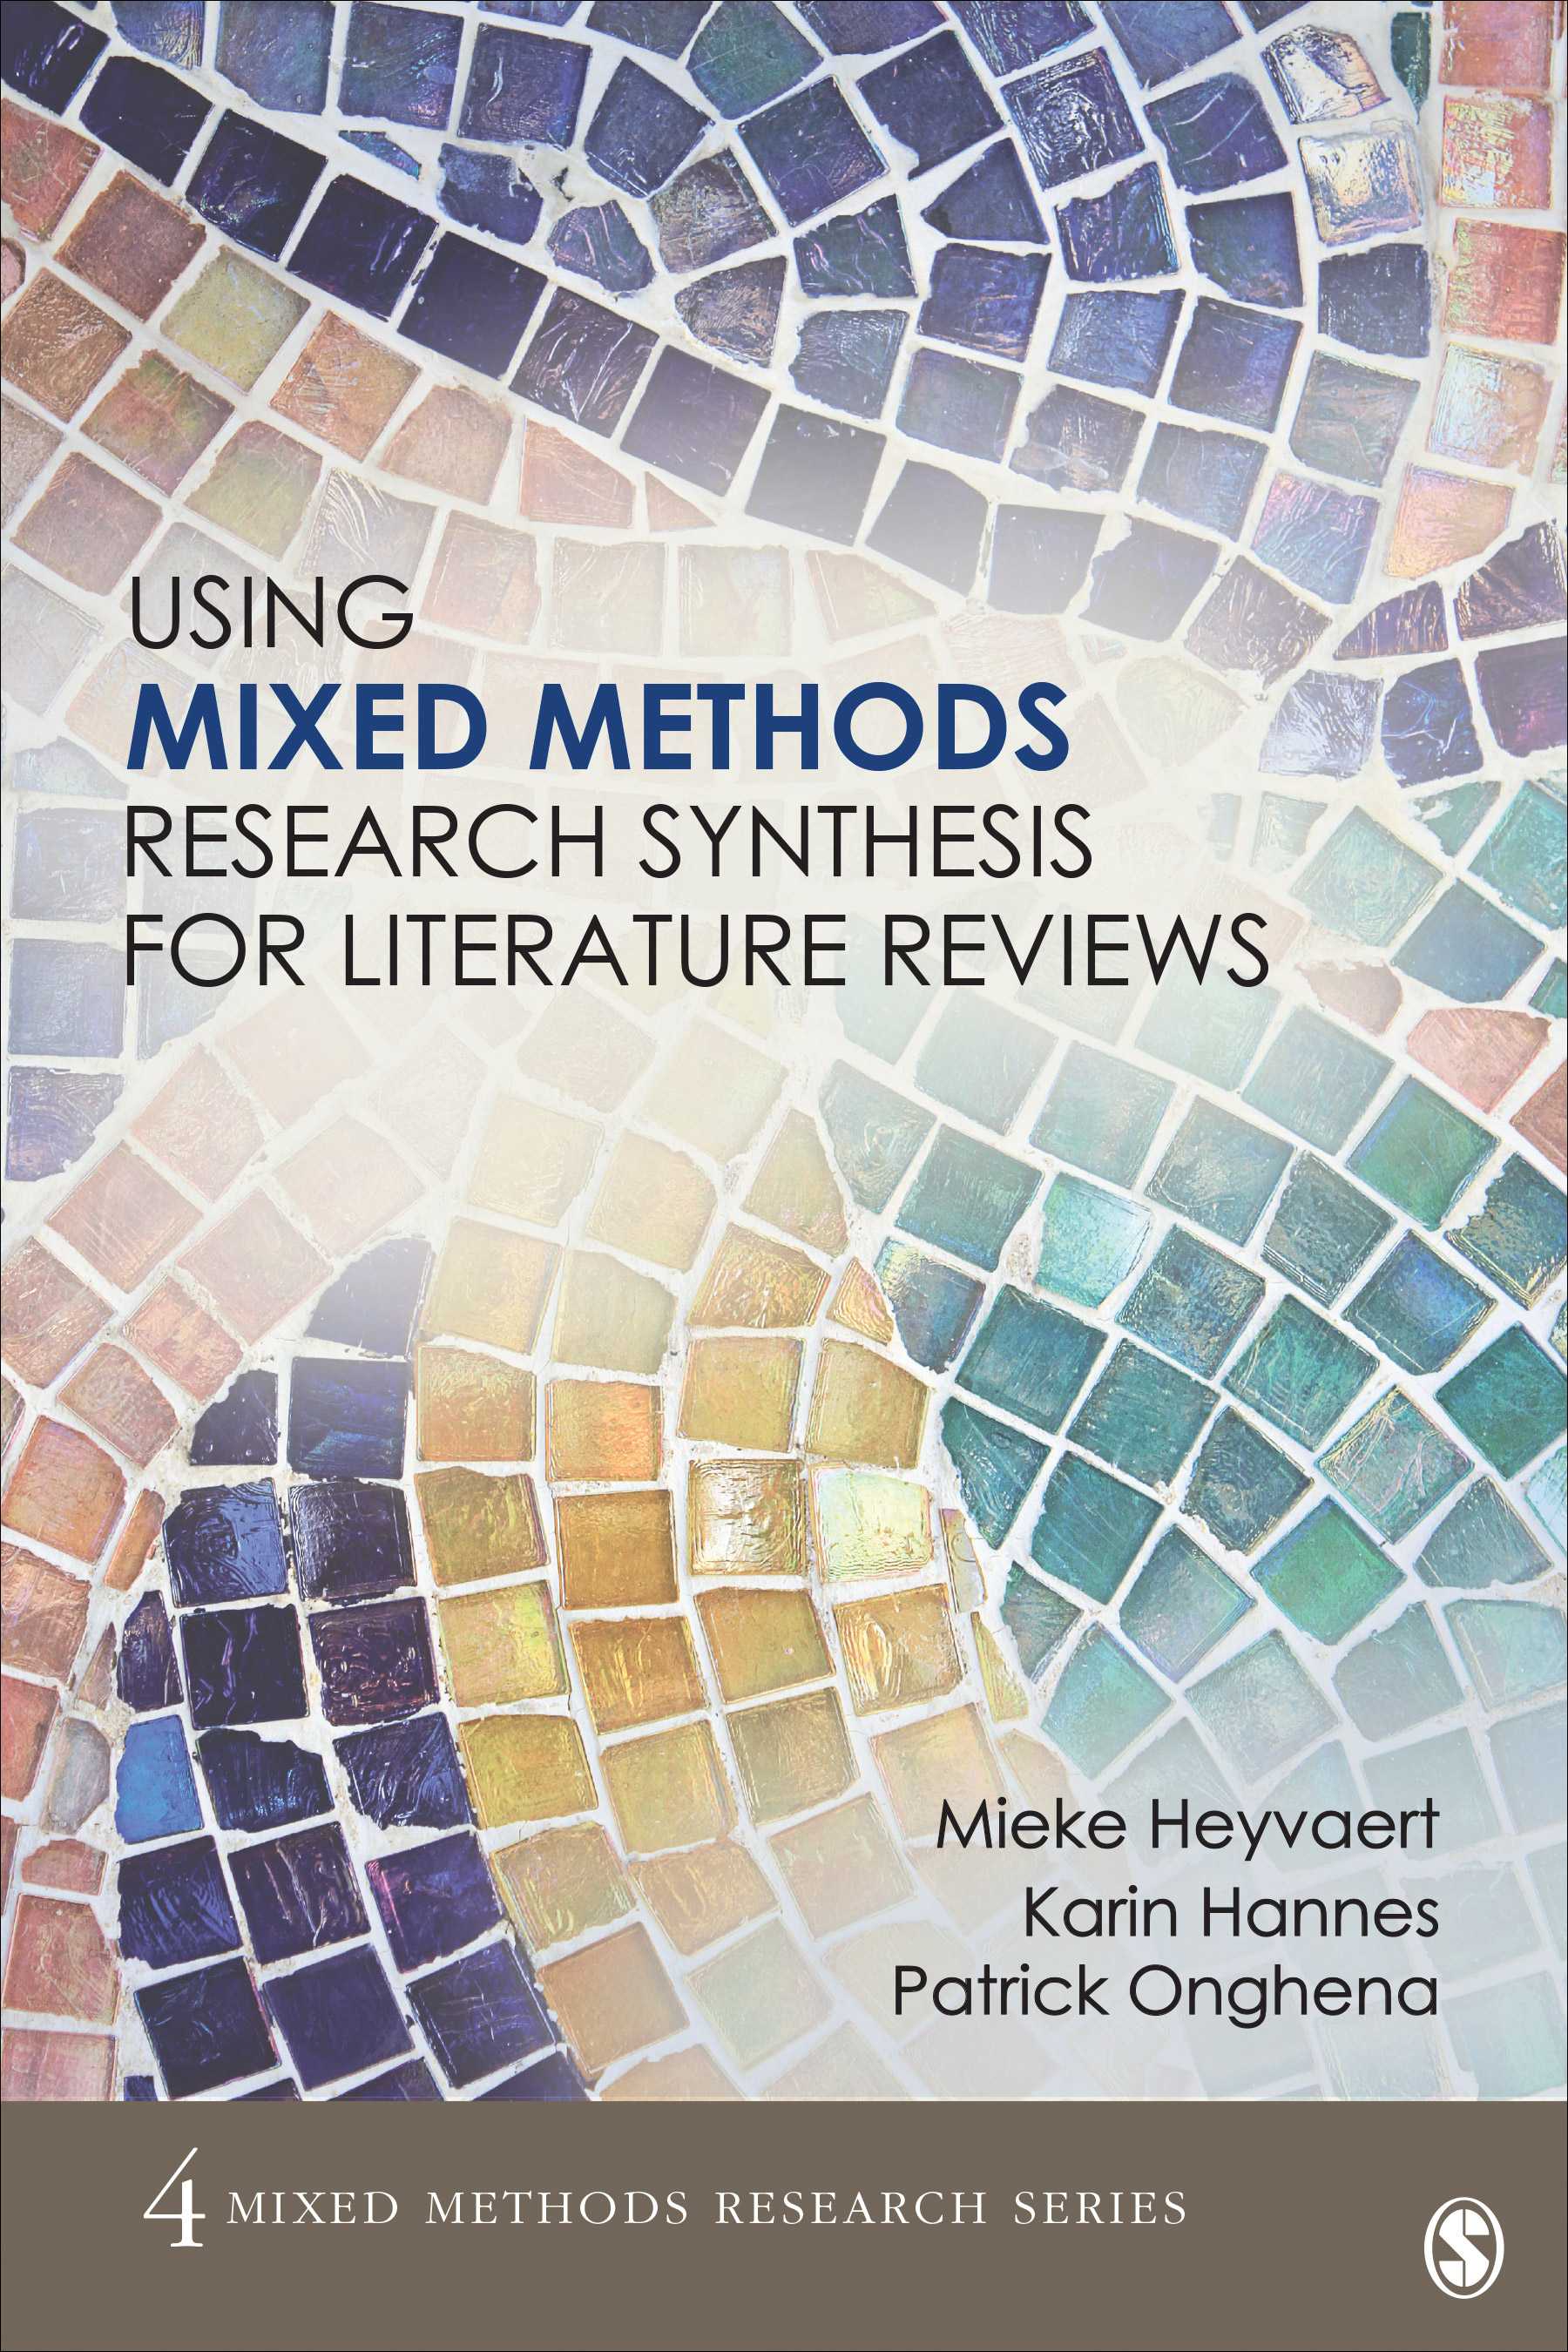 mixed methods systematic literature review Methods a mixed-methods systematic review was conducted of the peer-reviewed literature in 12 databases from 1984-2014 four reviewers screened the titles and abstracts of articles and reviewed full text articles in duplicate.